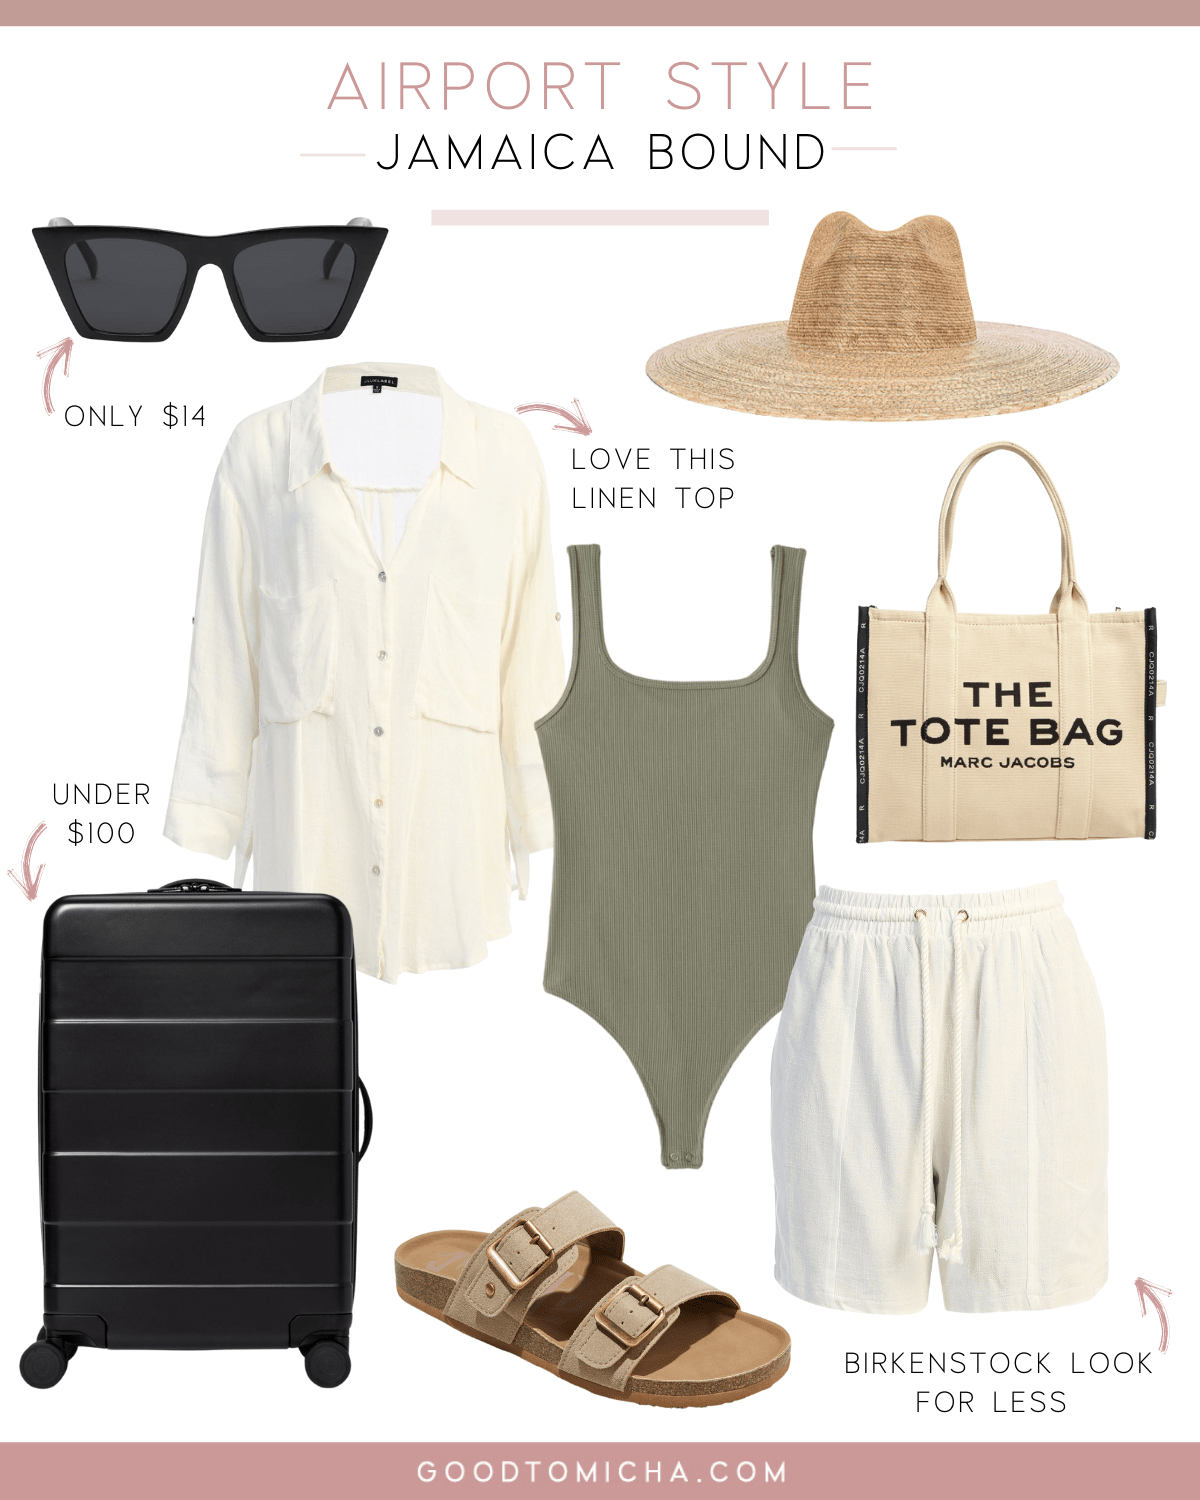 airport style for a tropical getaway in Jamaica